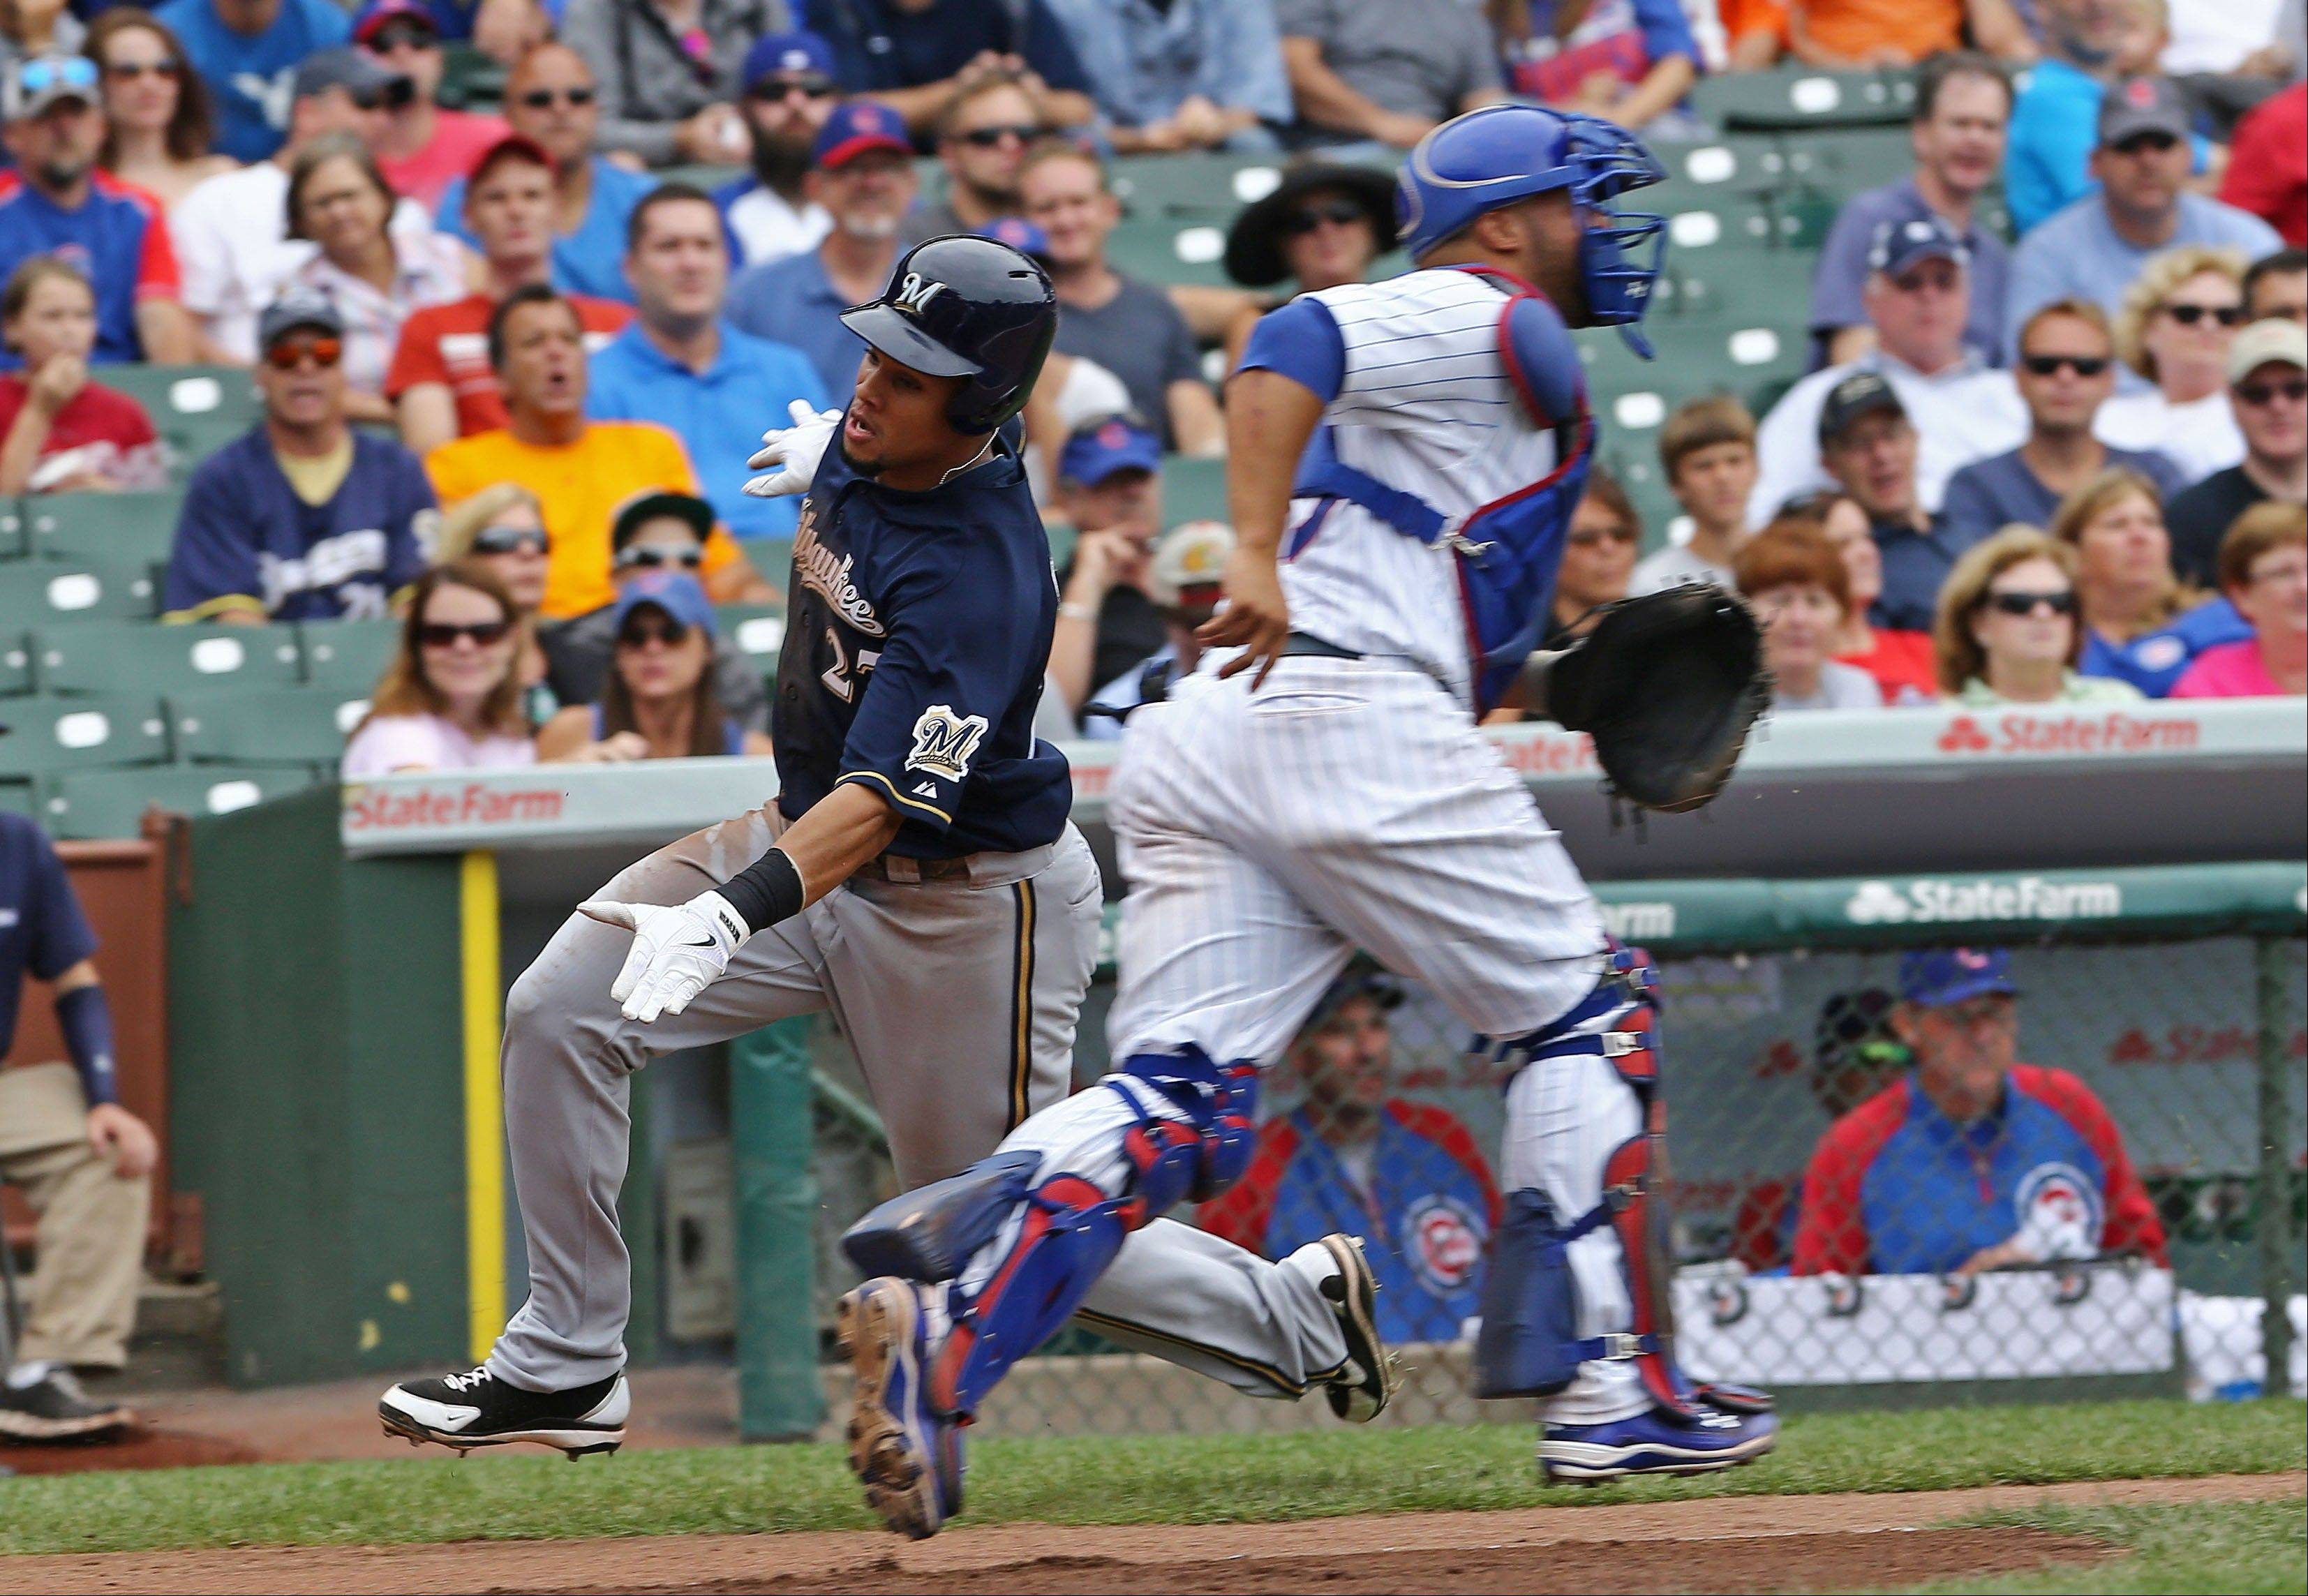 Milwaukee Brewers� Carlos Gomez slides past Chicago Cubs catcher Wellington Castillo to score in the seventh inning during a baseball game in Chicago on Sunday, Sept. 8, 2013.